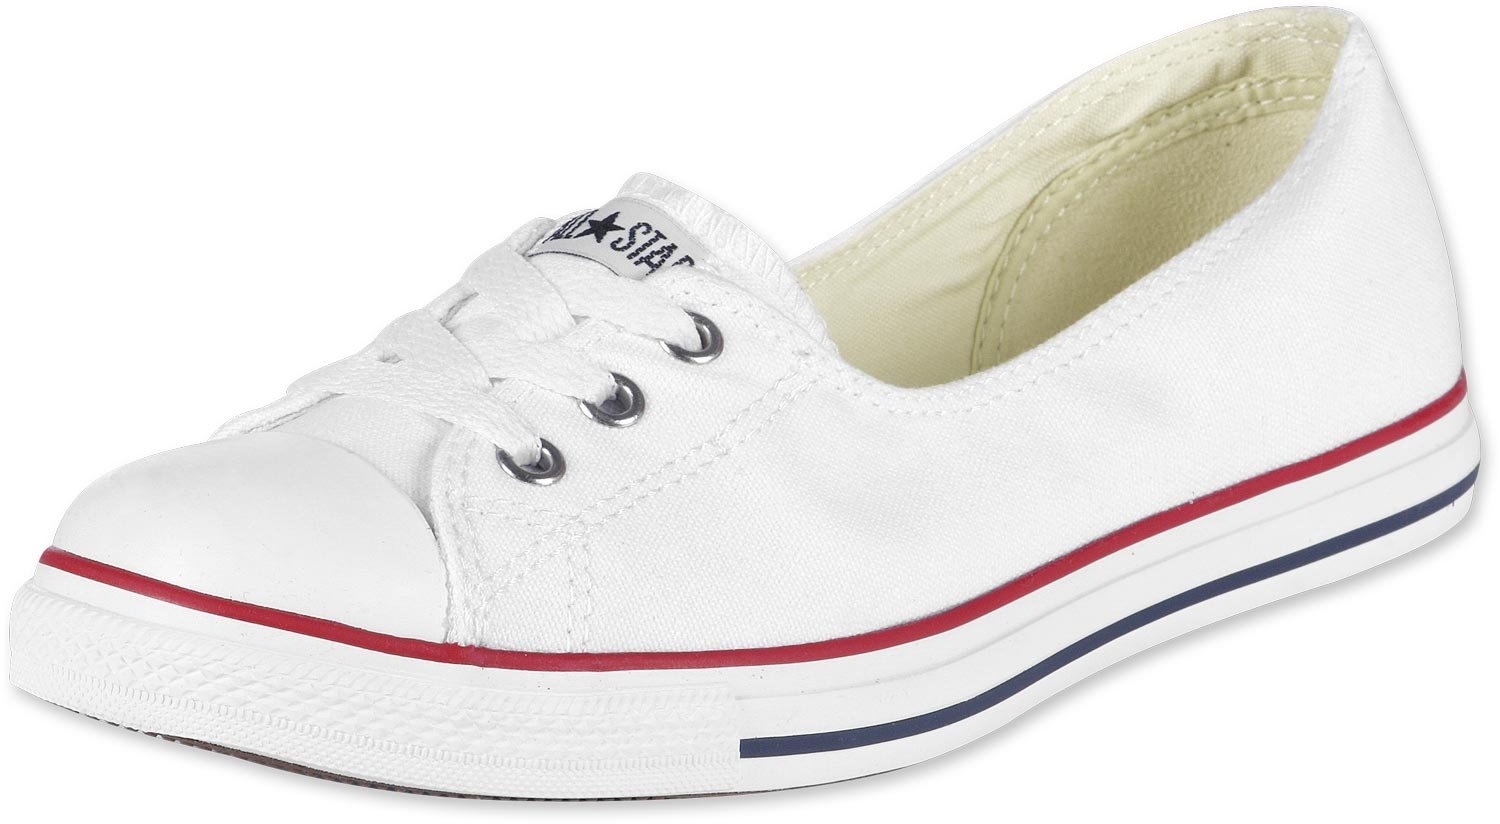 8b9516e30093 CONVERSE Schuhe - CT DANCE LACE OX - 522253 - white